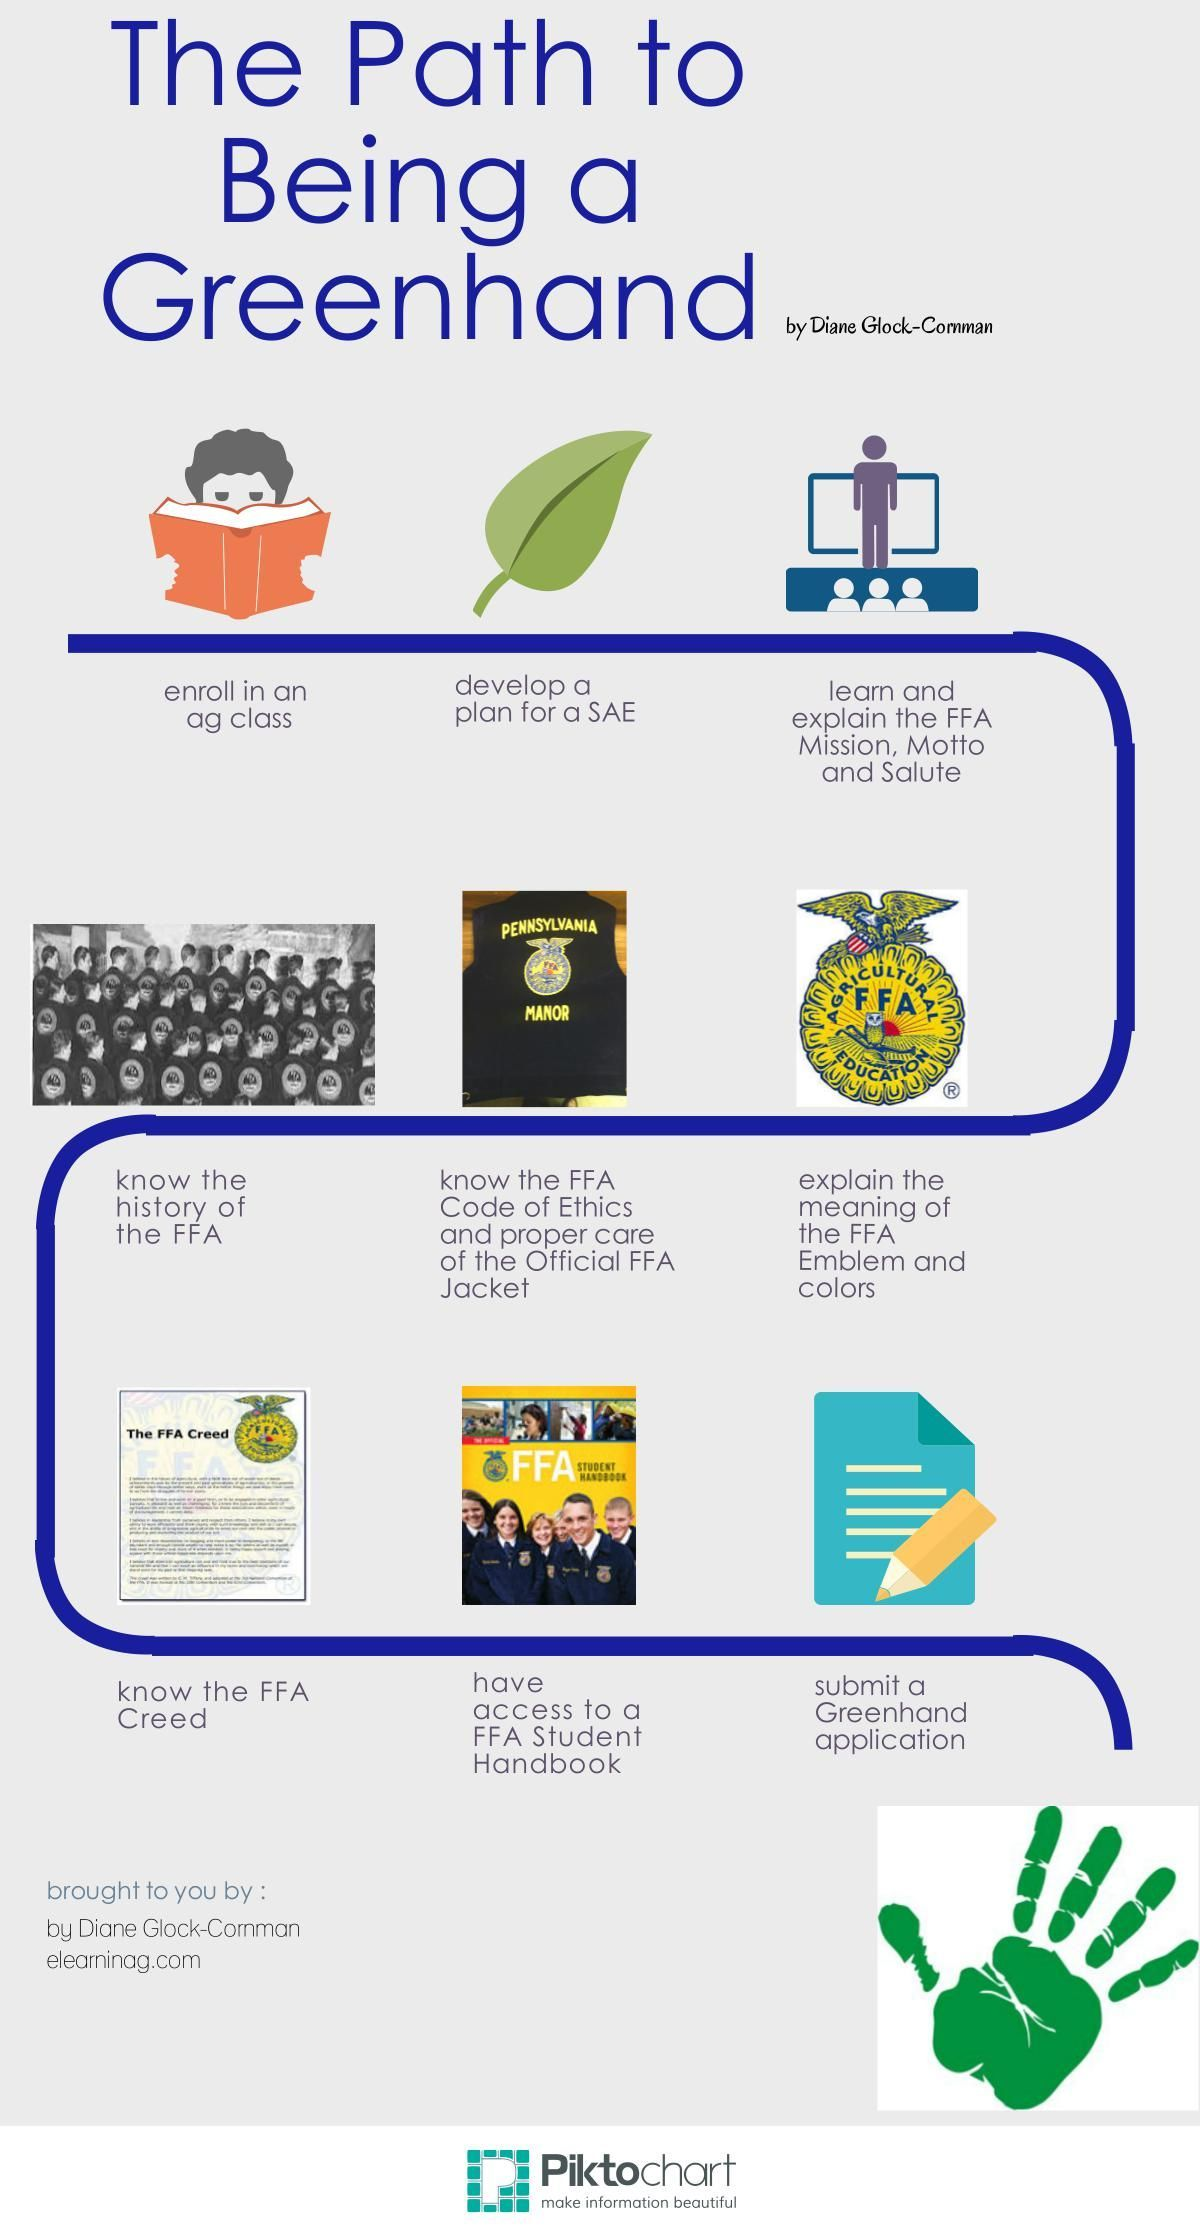 How To Focus On Homework 5 Easy Ways In 2020 Agriculture Education Infographic Environmental Education